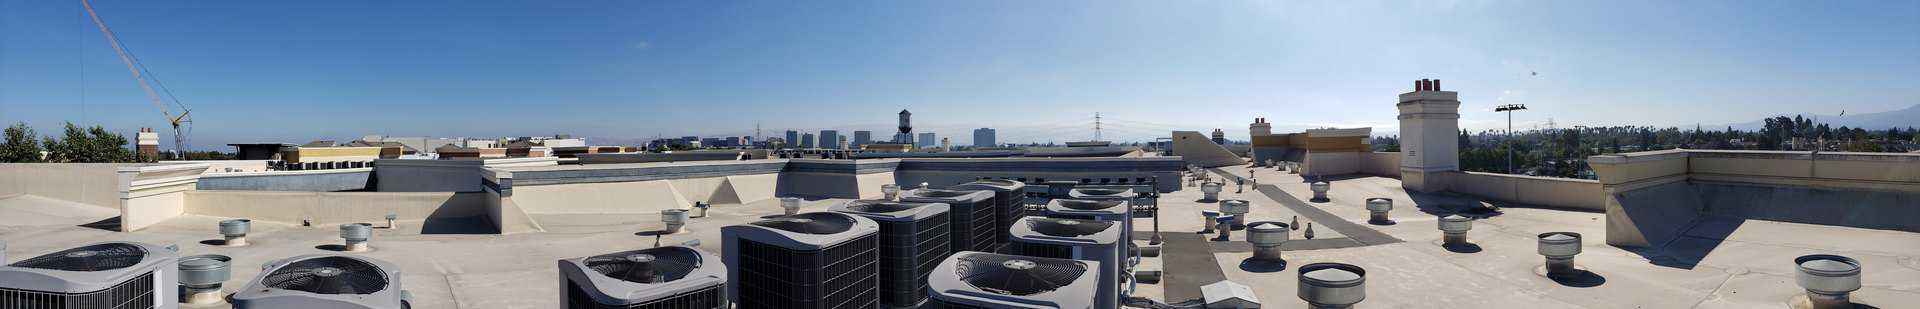 panramic-view-air-conditioners